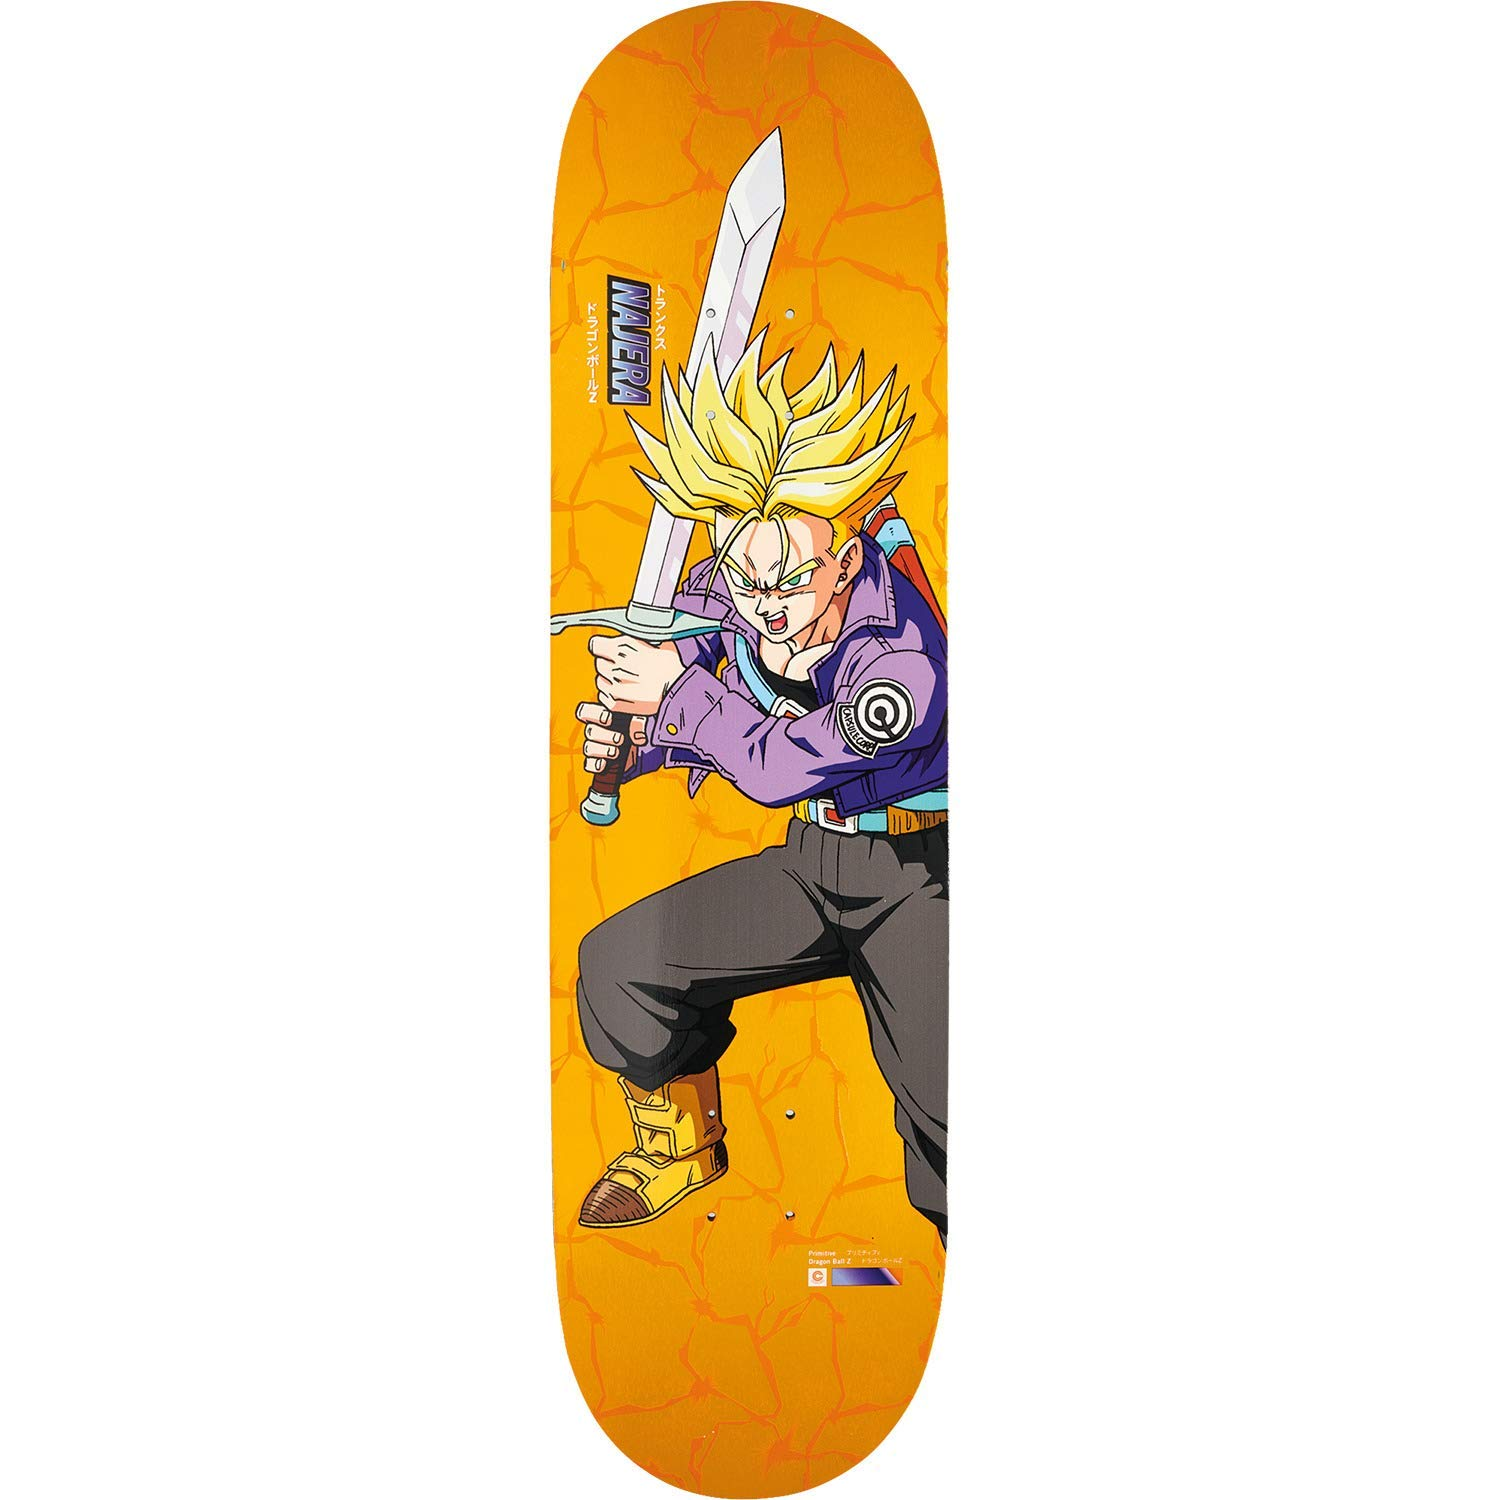 "Primitive Skateboarding Diego Najera Dragon Ball Z Trunks Orange Skateboard Deck - 8"" x 31.5"""